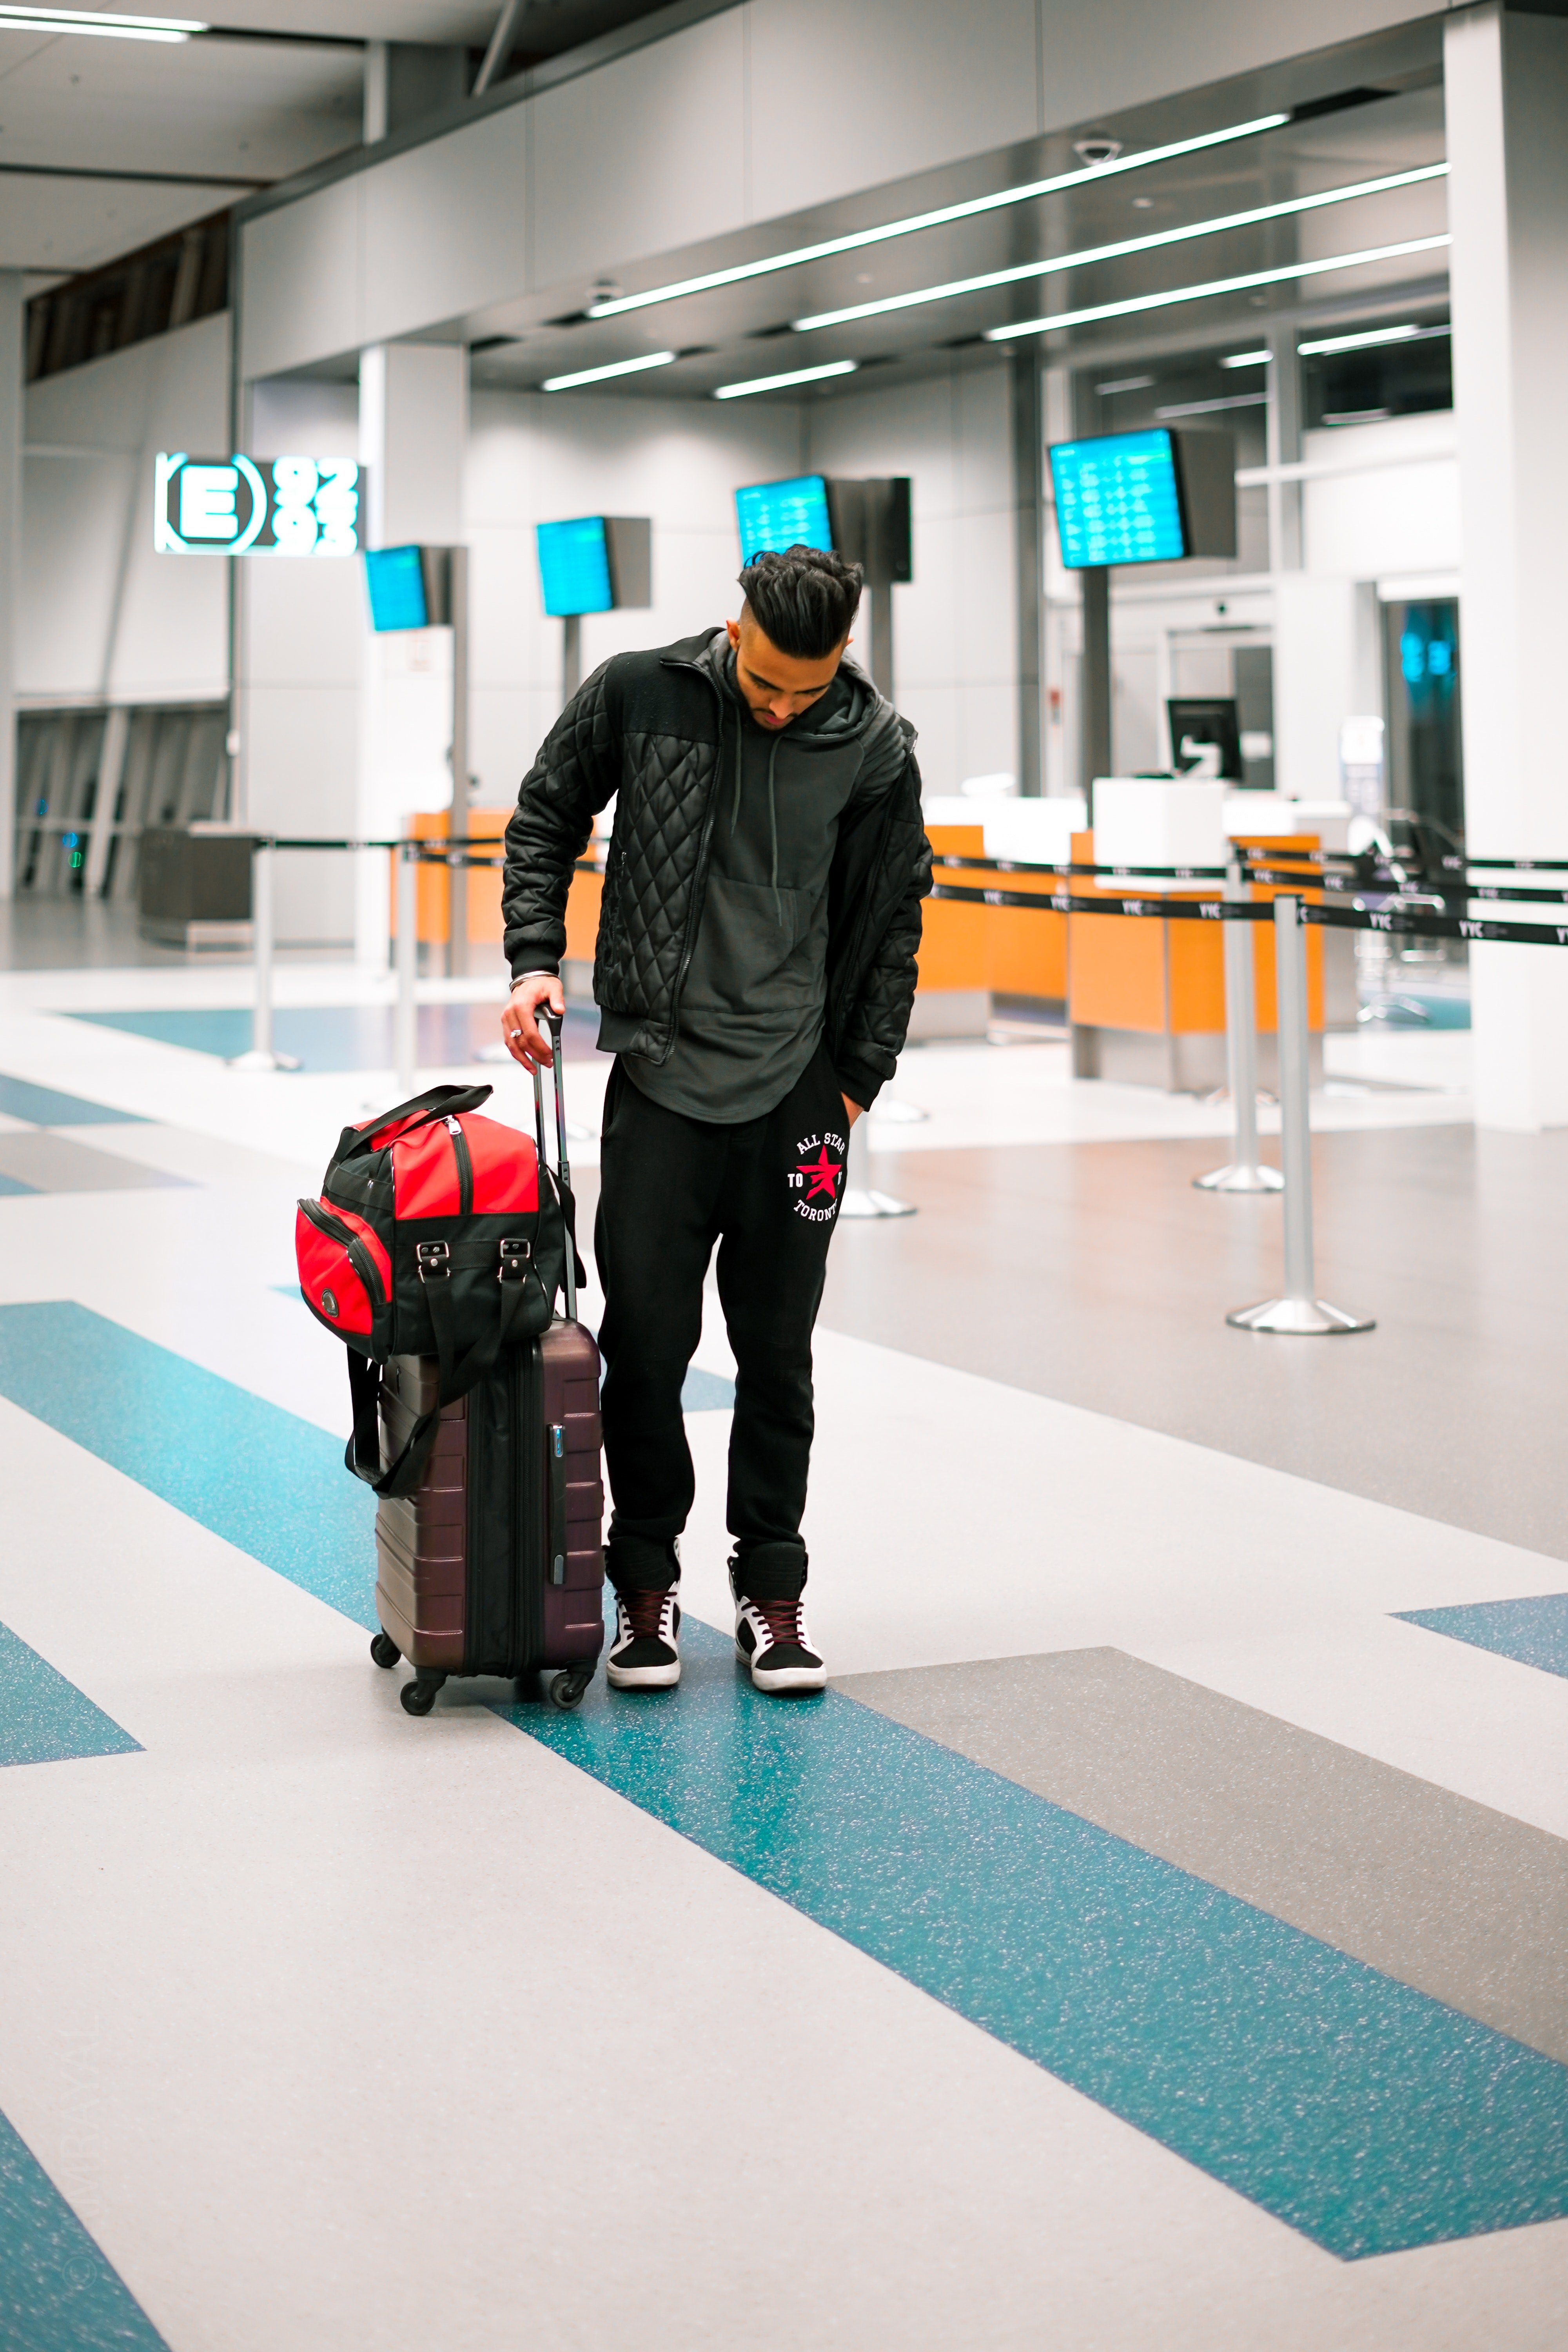 Pictured - A man at the airport carrying his luggage while looking down. | Source: Pexels